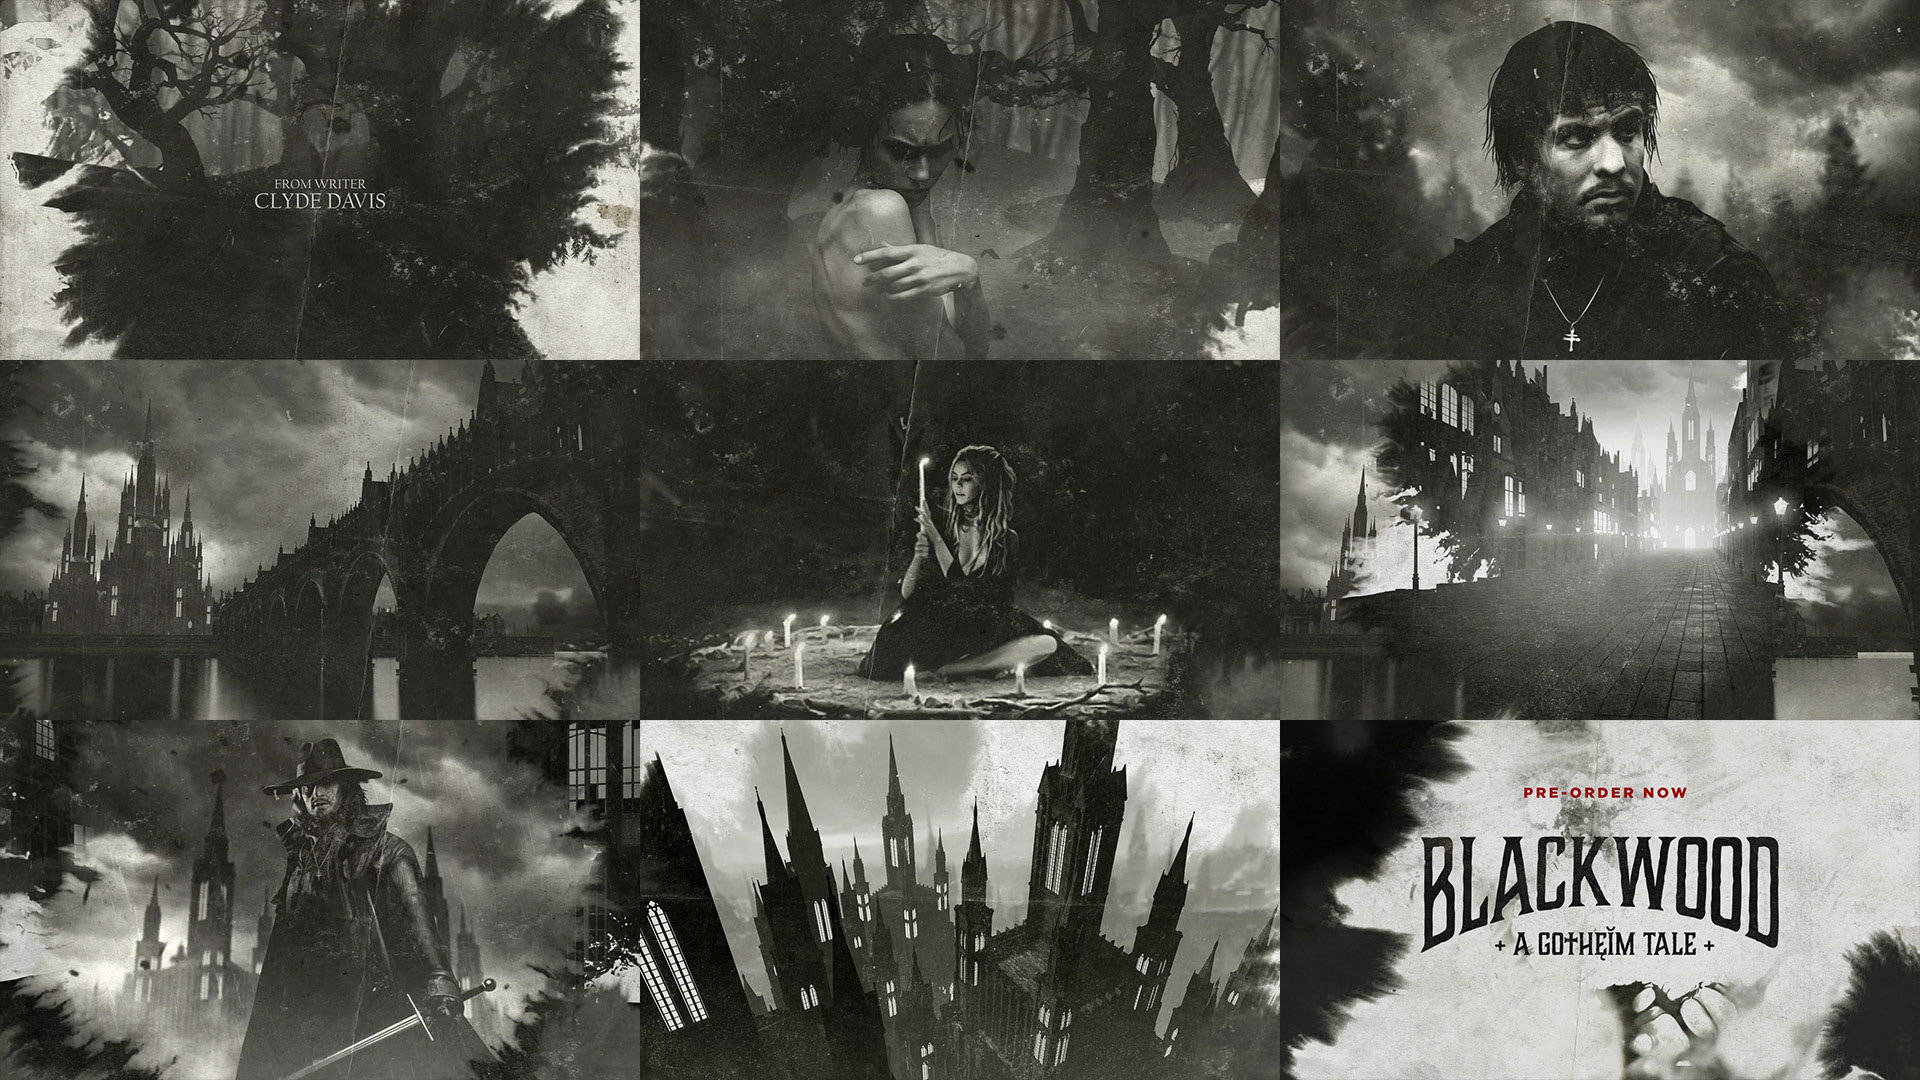 styleframes for the gothic horror Blackwood teaser video for facebook & instagram